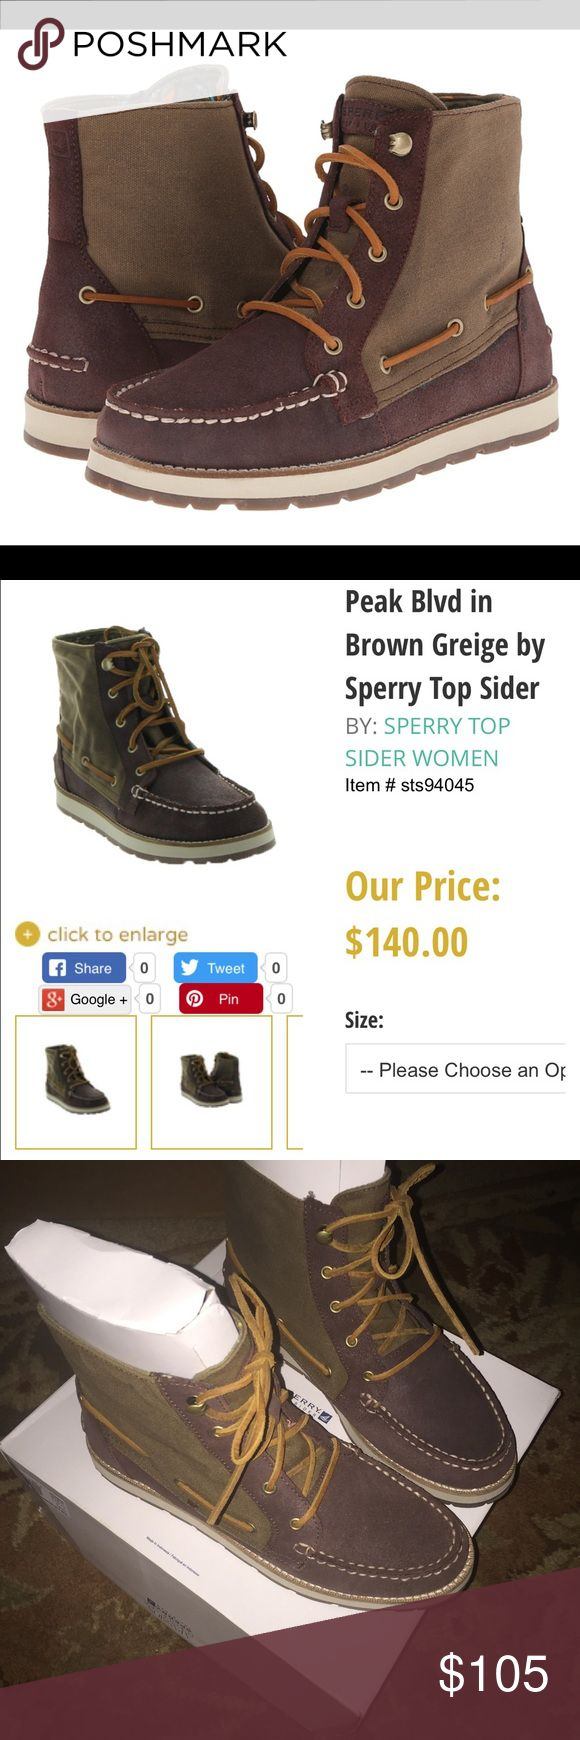 💕Like New Sperry Boots💕 ✨PLEASE READ sizing details✨These are practically BRAND NEW! Only worn once. I paid $159.00, and now even on sale they are $140...... and very hard to find! The price isn't negotiable, because again these are in NEW condition. I am a size: 10 in every shoe. These are a size 9.5, but they run big, so they fit a size: 10 good, with a little extra room. 🚨PRICE FIRM, no offers please Sperry Shoes Ankle Boots & Booties